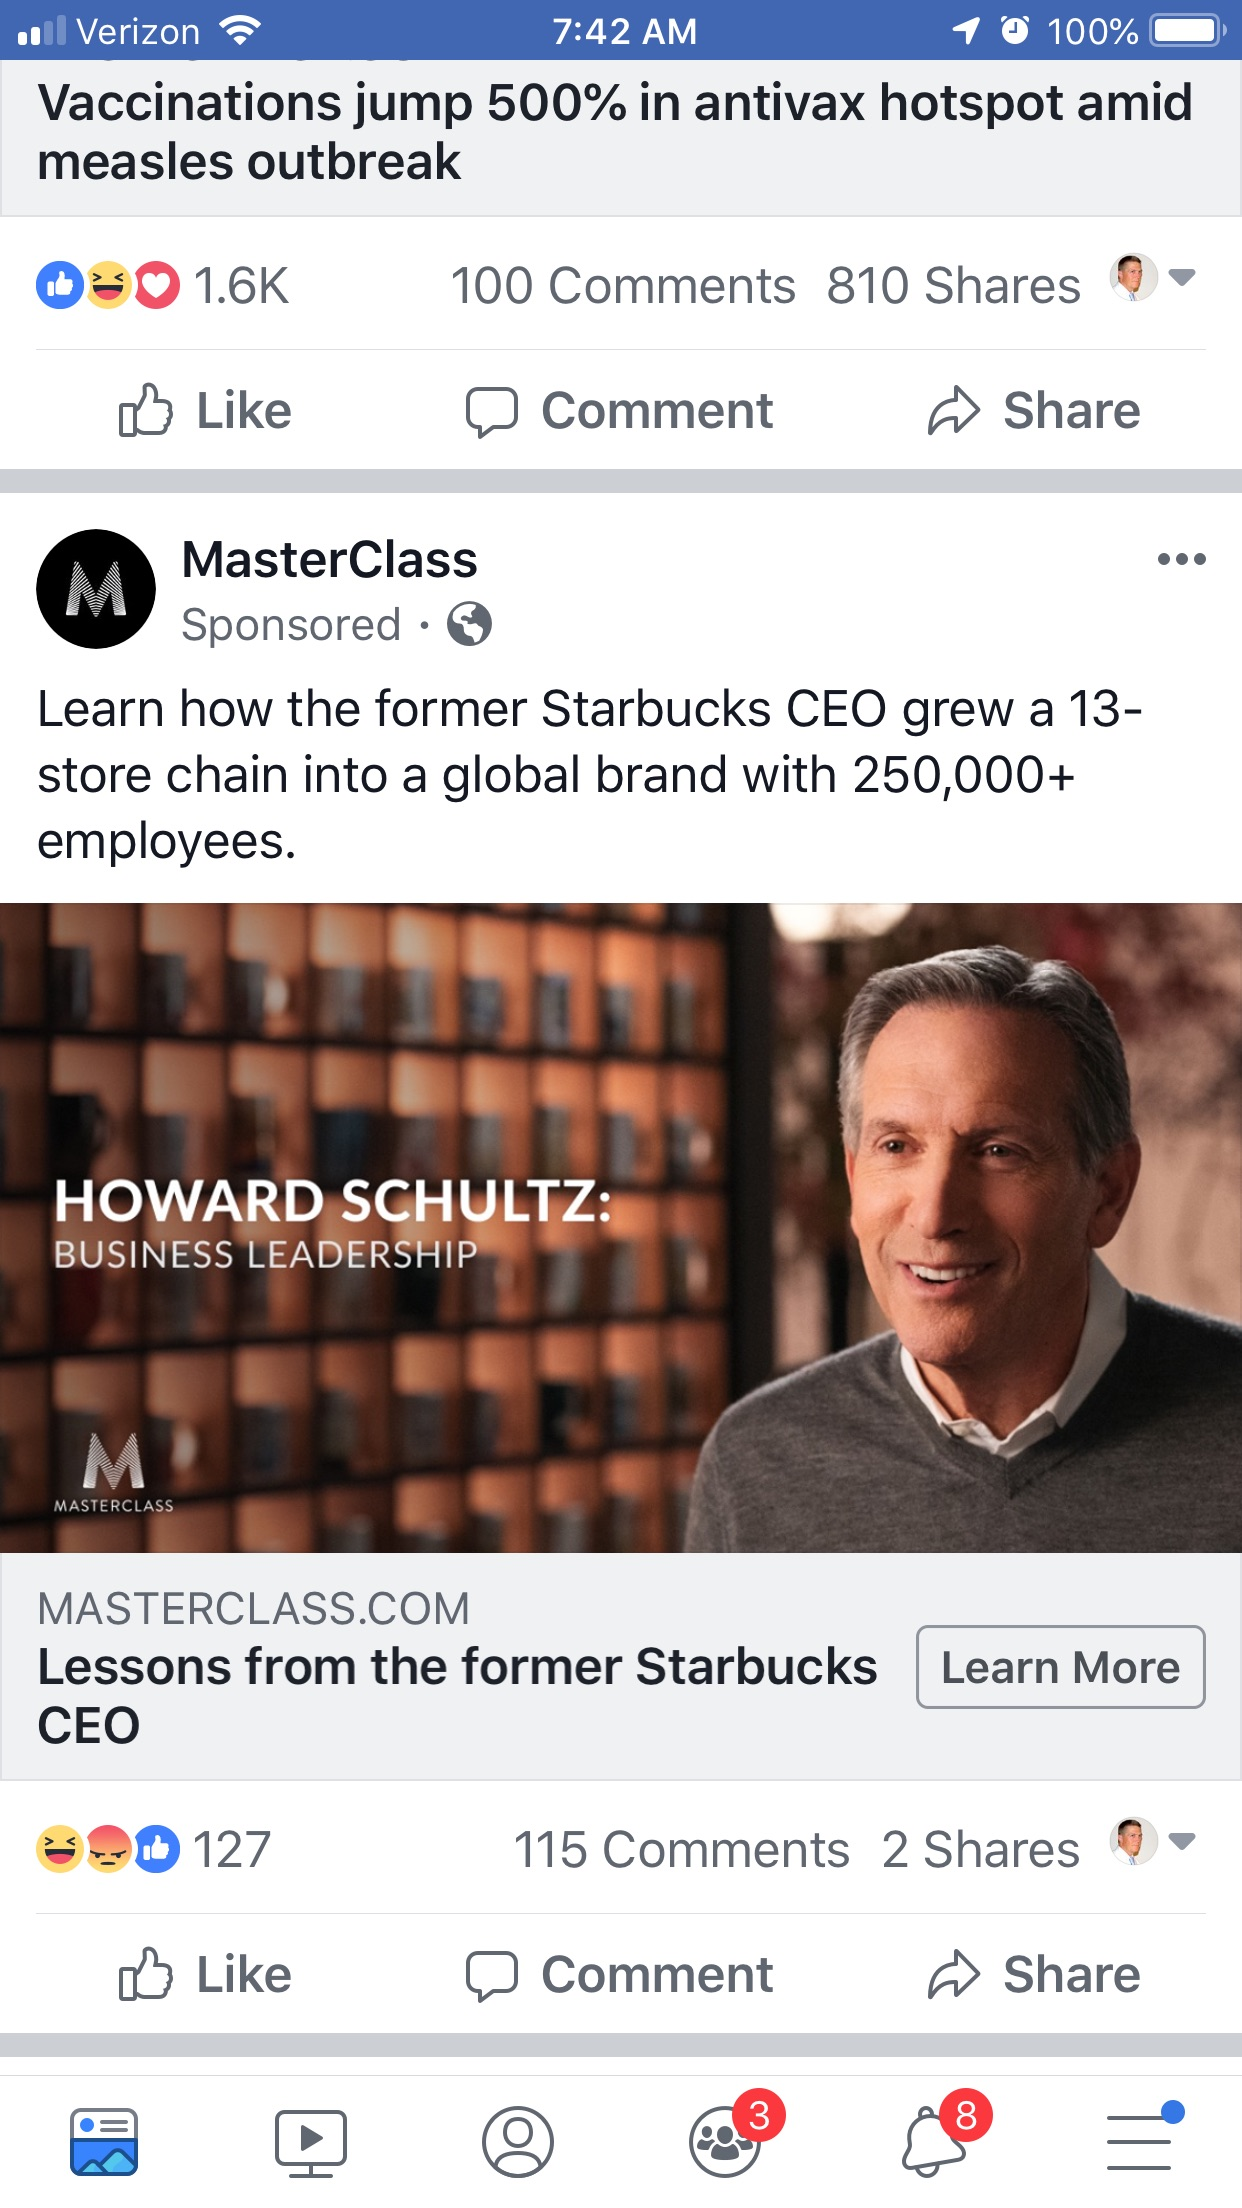 Howard Schultz MasterClass Facebook ad.